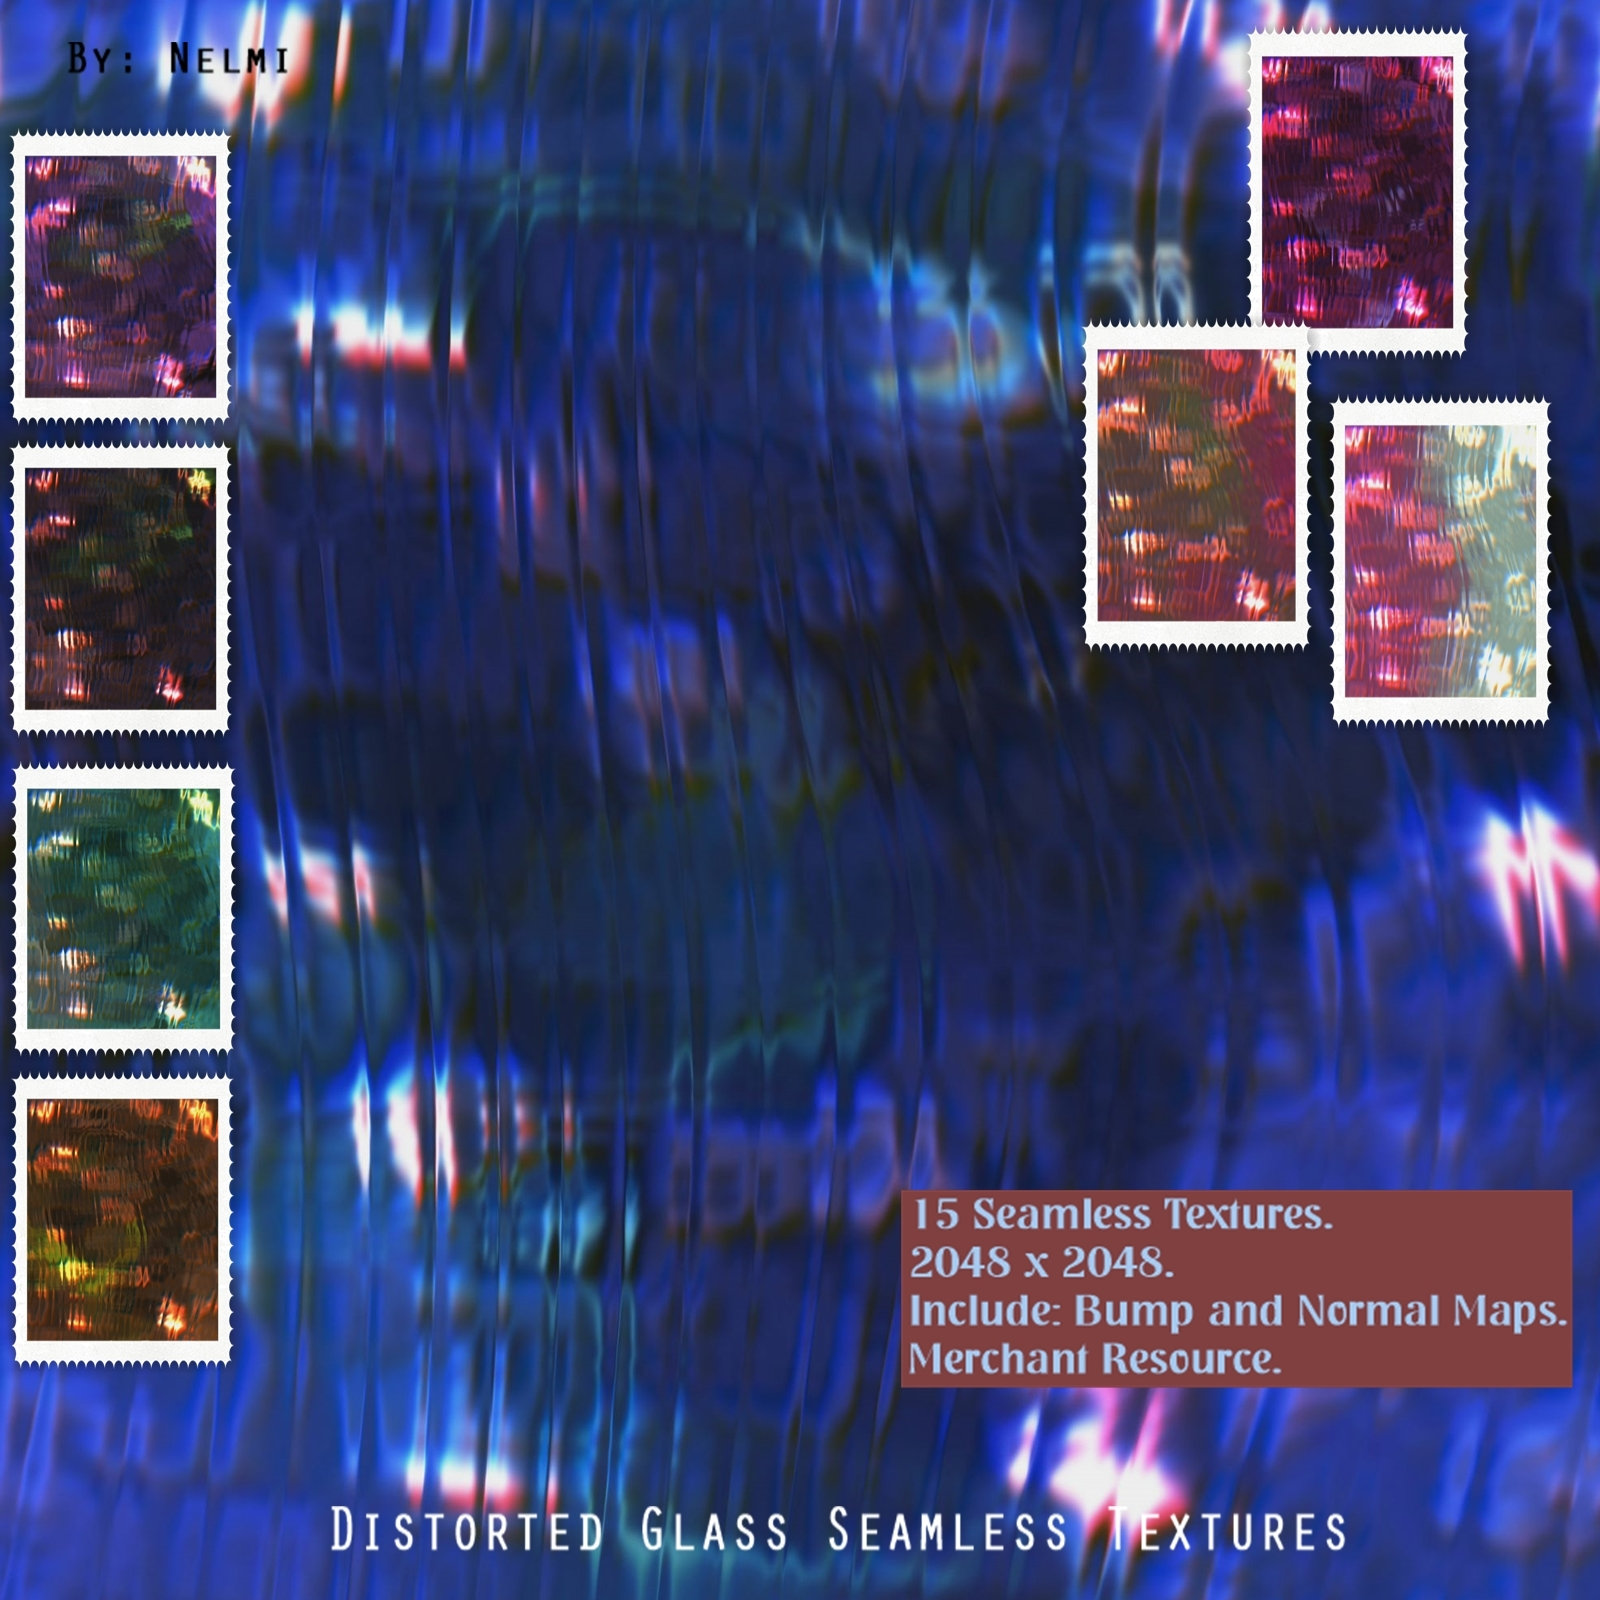 15 Distorted Glass Seamless Textures - MR